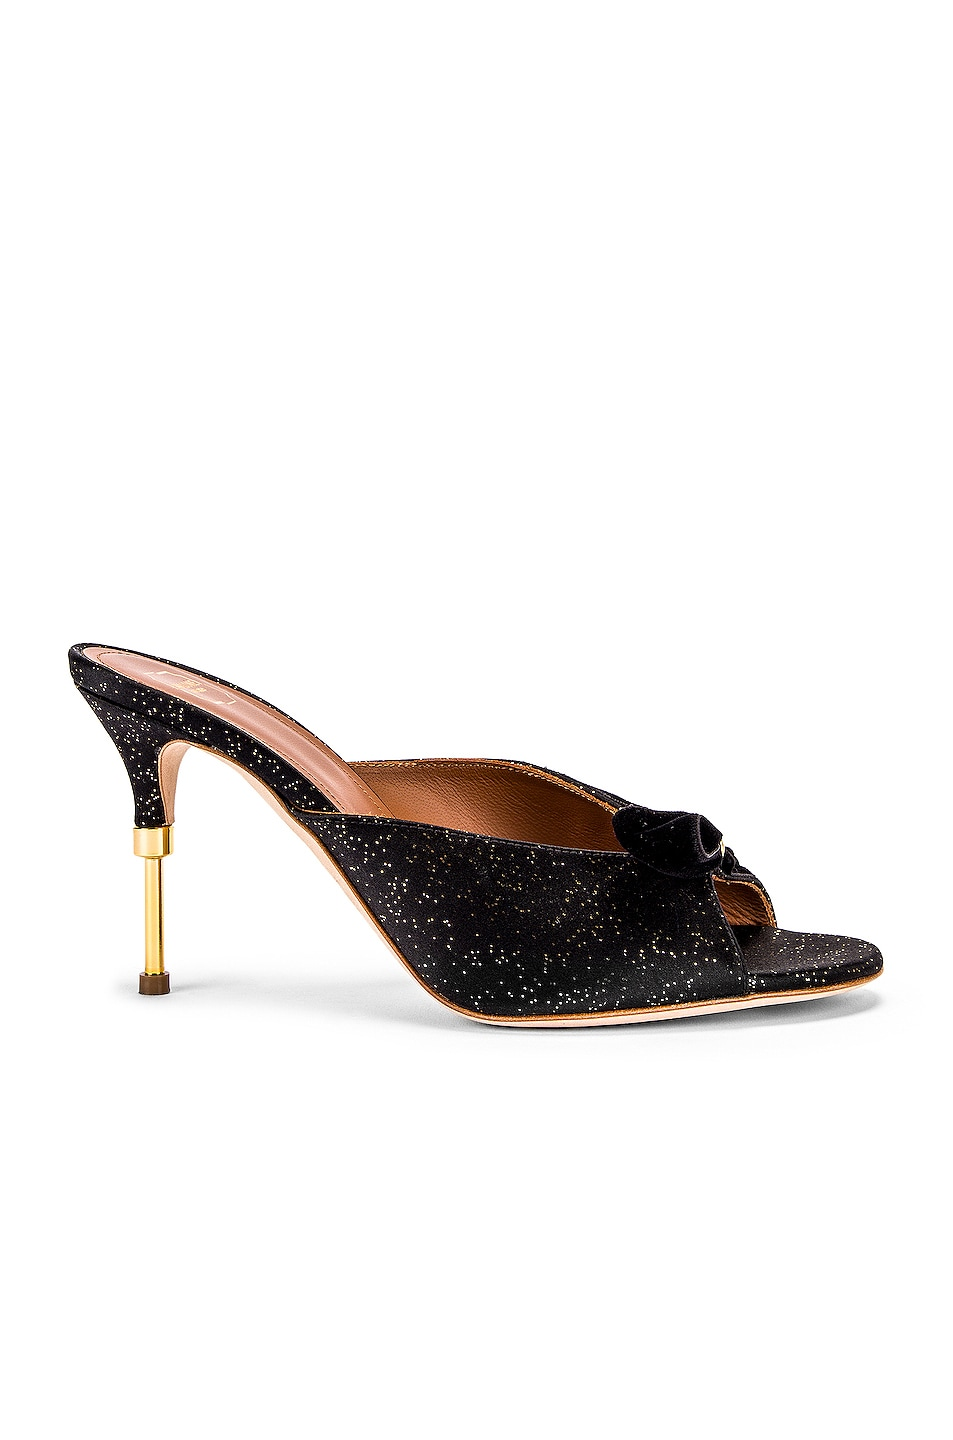 Image 1 of Malone Souliers Paiige 85 Heel in Black & Gold